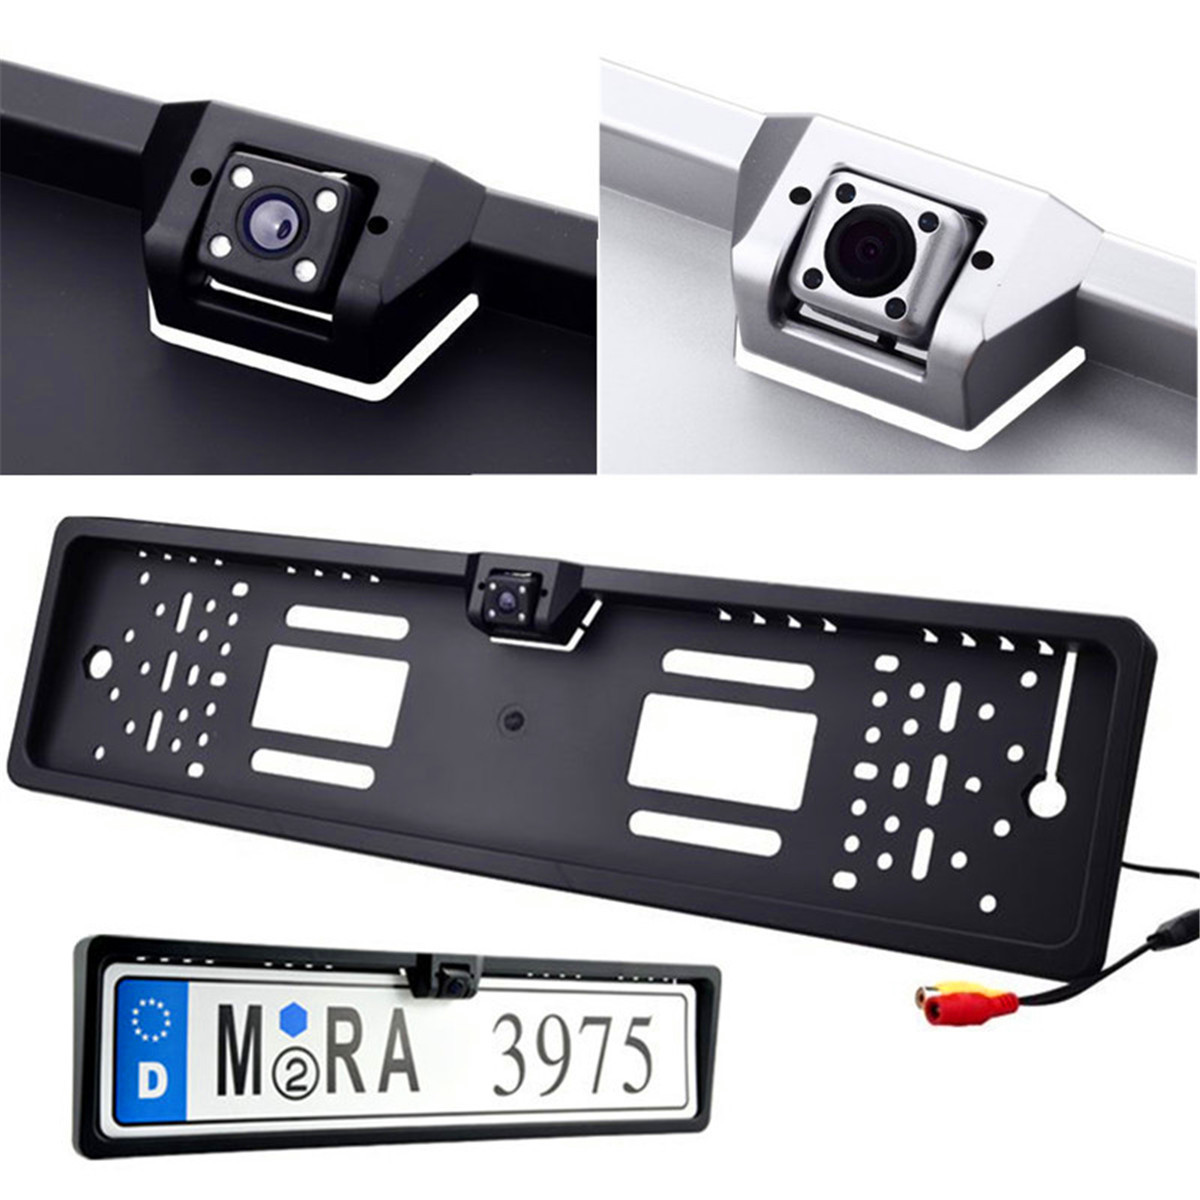 HD Car Rear View Camera 4 LED Night Vision Auto Reverse Parking Monitor Backup Camera CMOS NTSC for European License Plate Frame